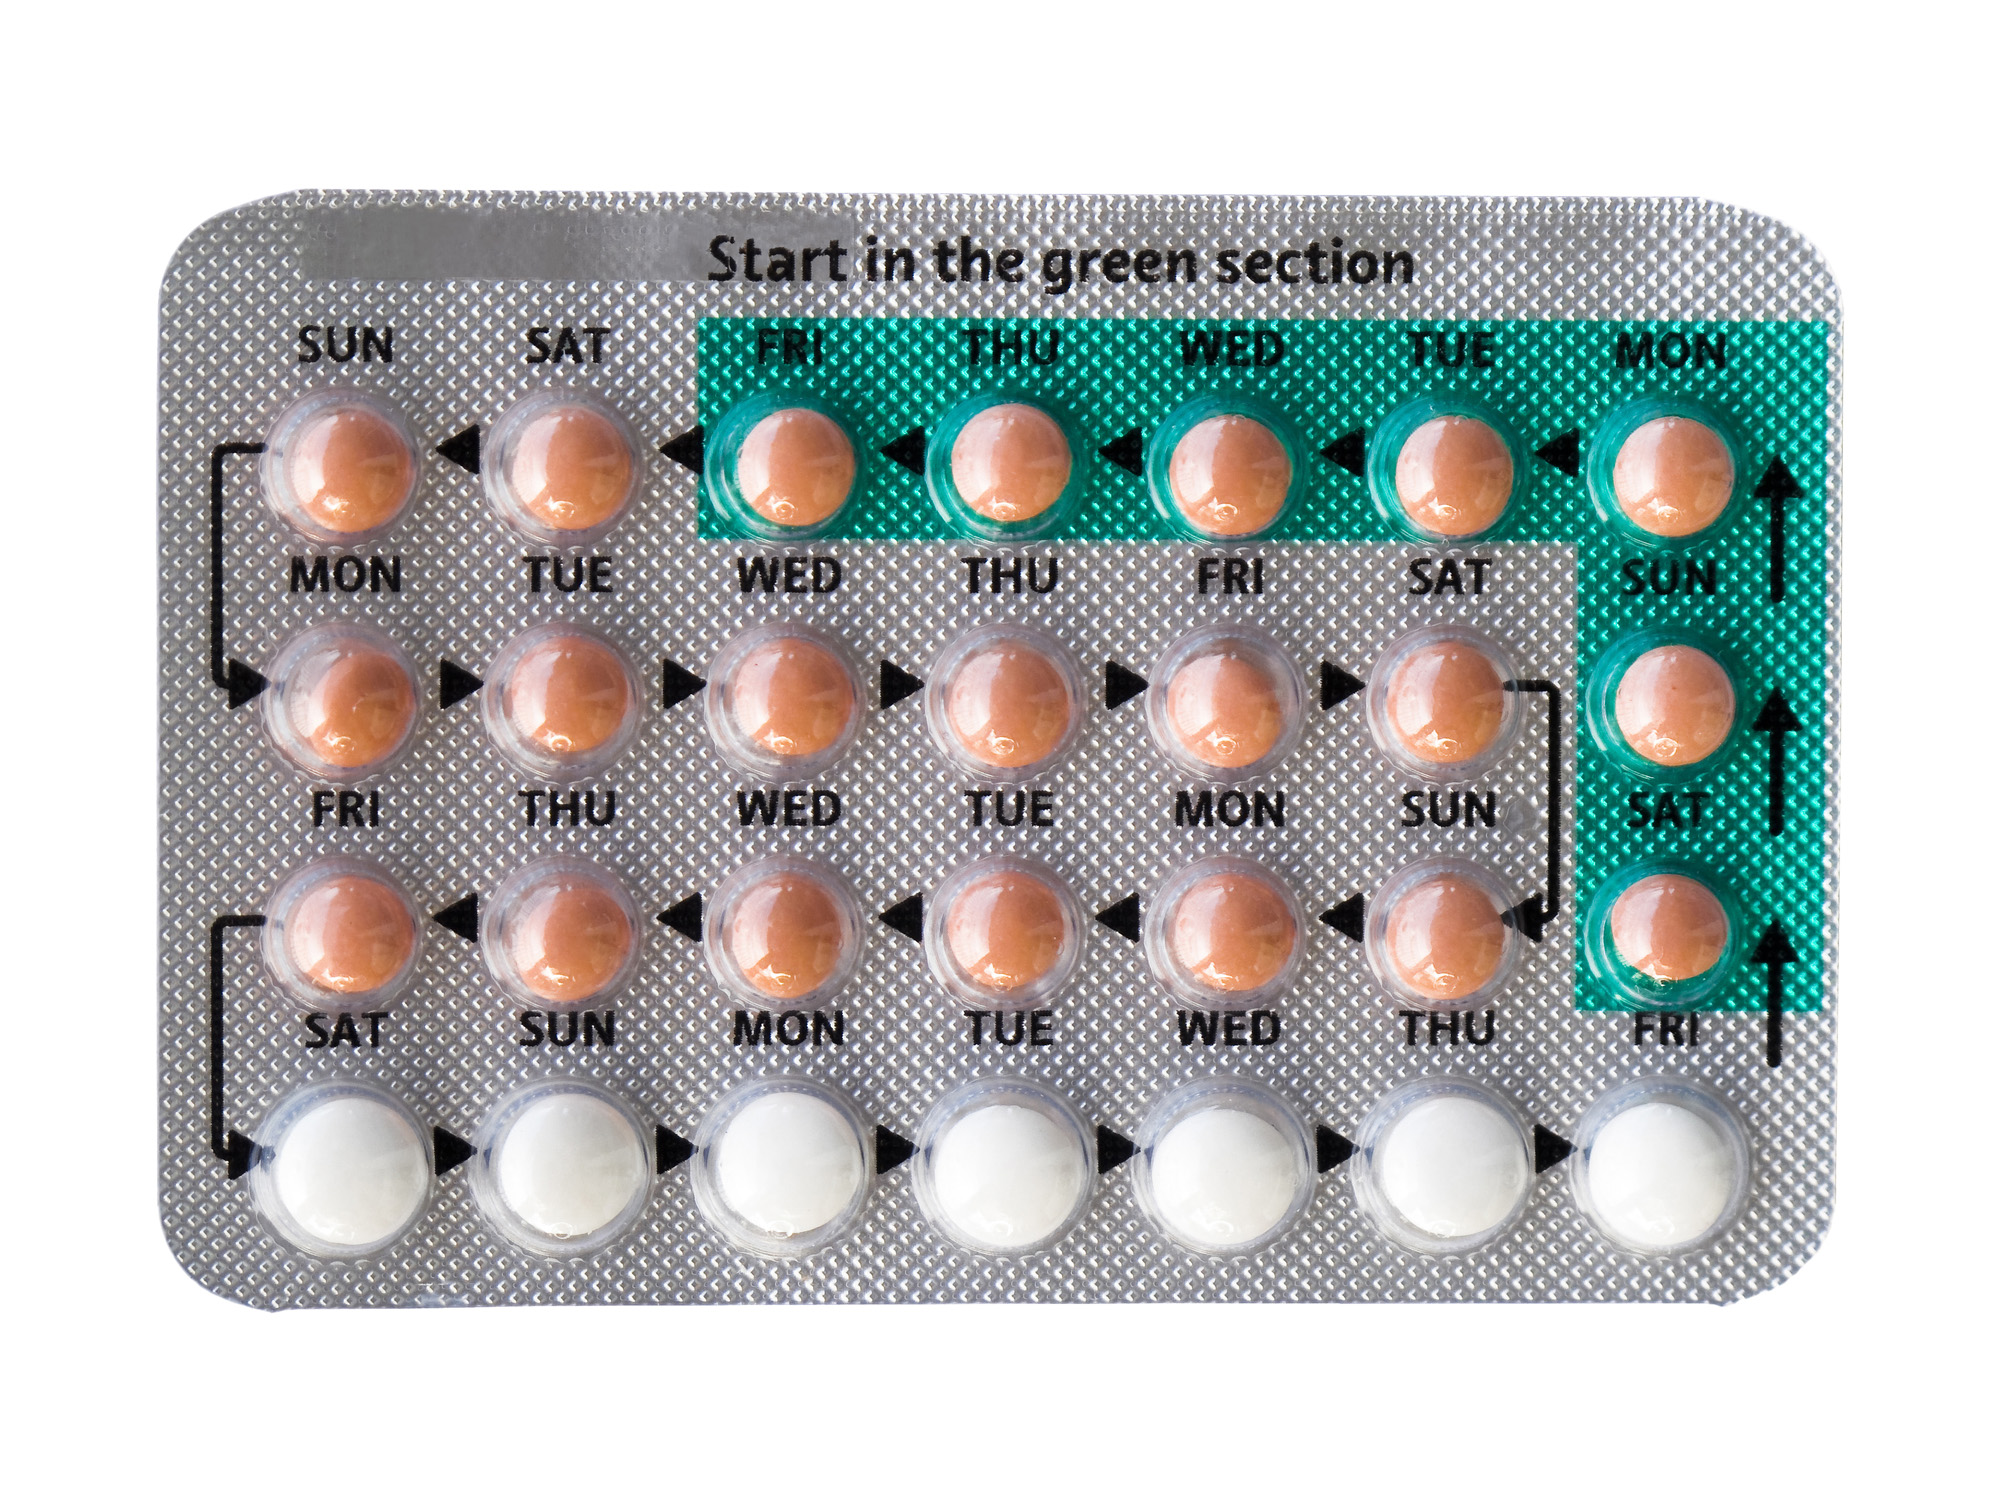 The contraceptive pill, isolated on white.